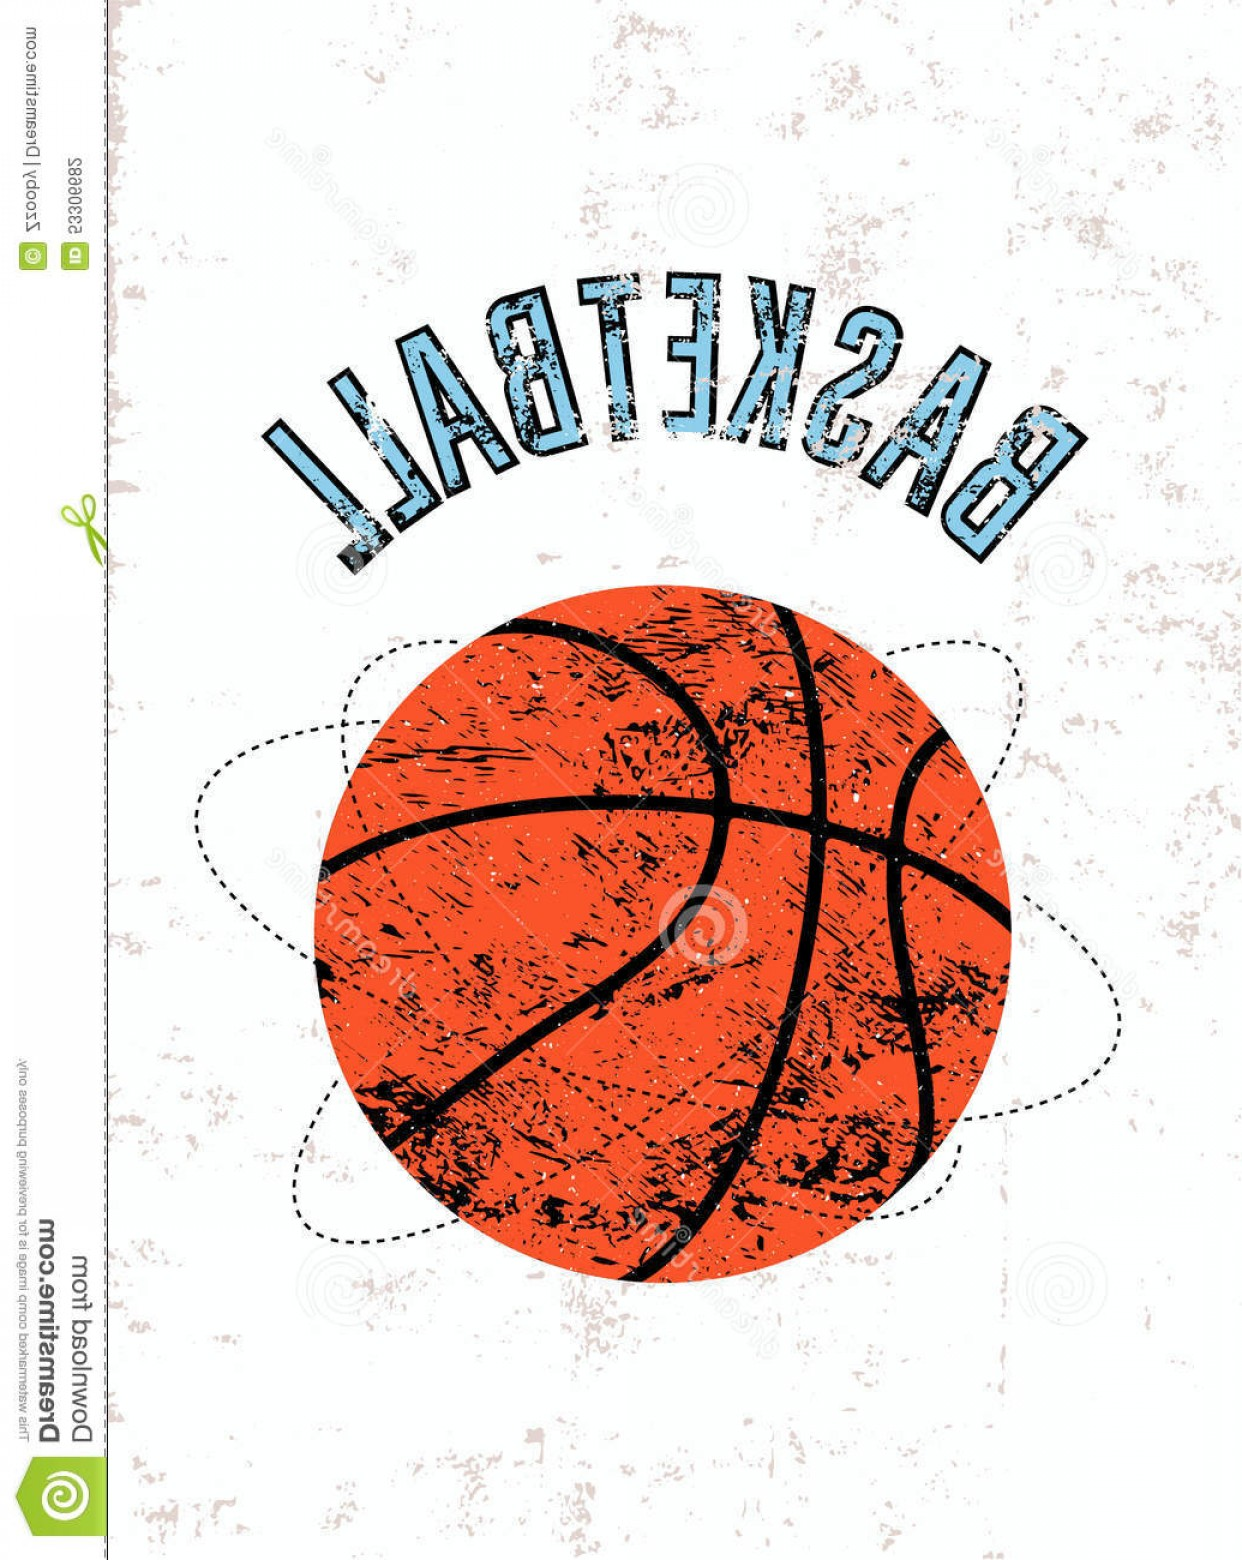 Vintage Basketball Vector: Stock Illustration Basketball Vintage Grunge Style Poster Retro Vector Illustration Image